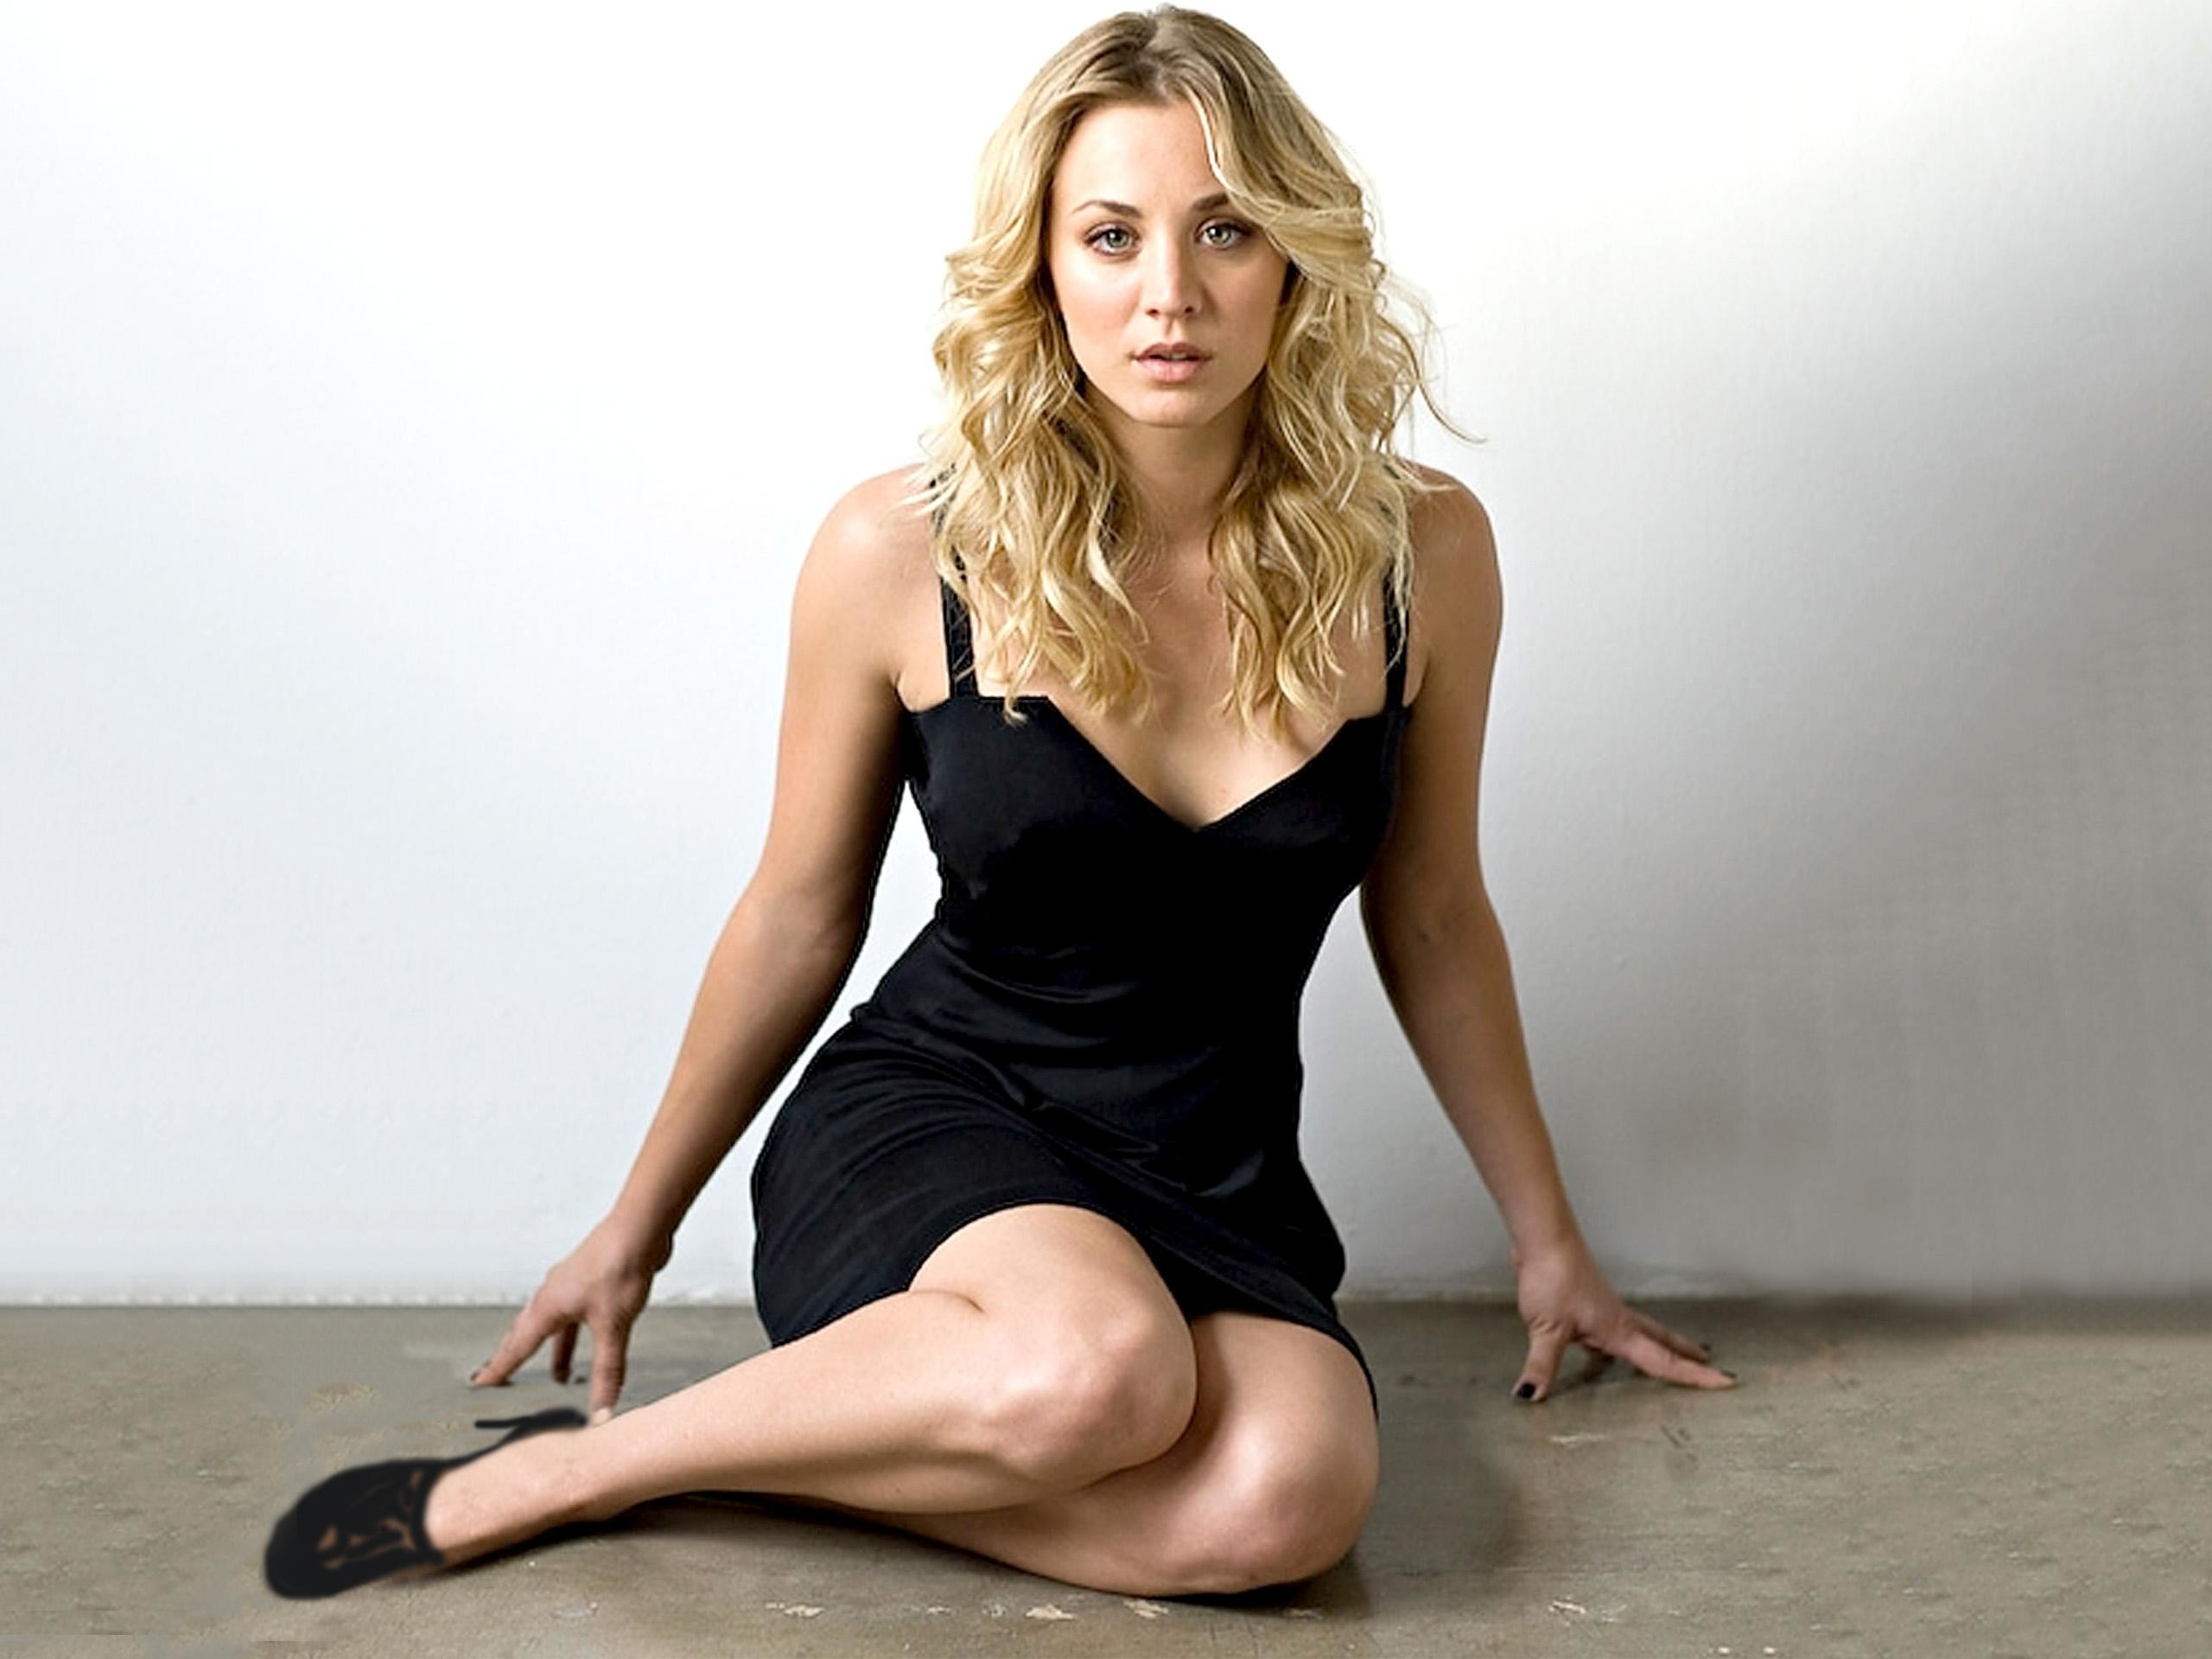 78+ kaley cuoco wallpapers on wallpaperplay